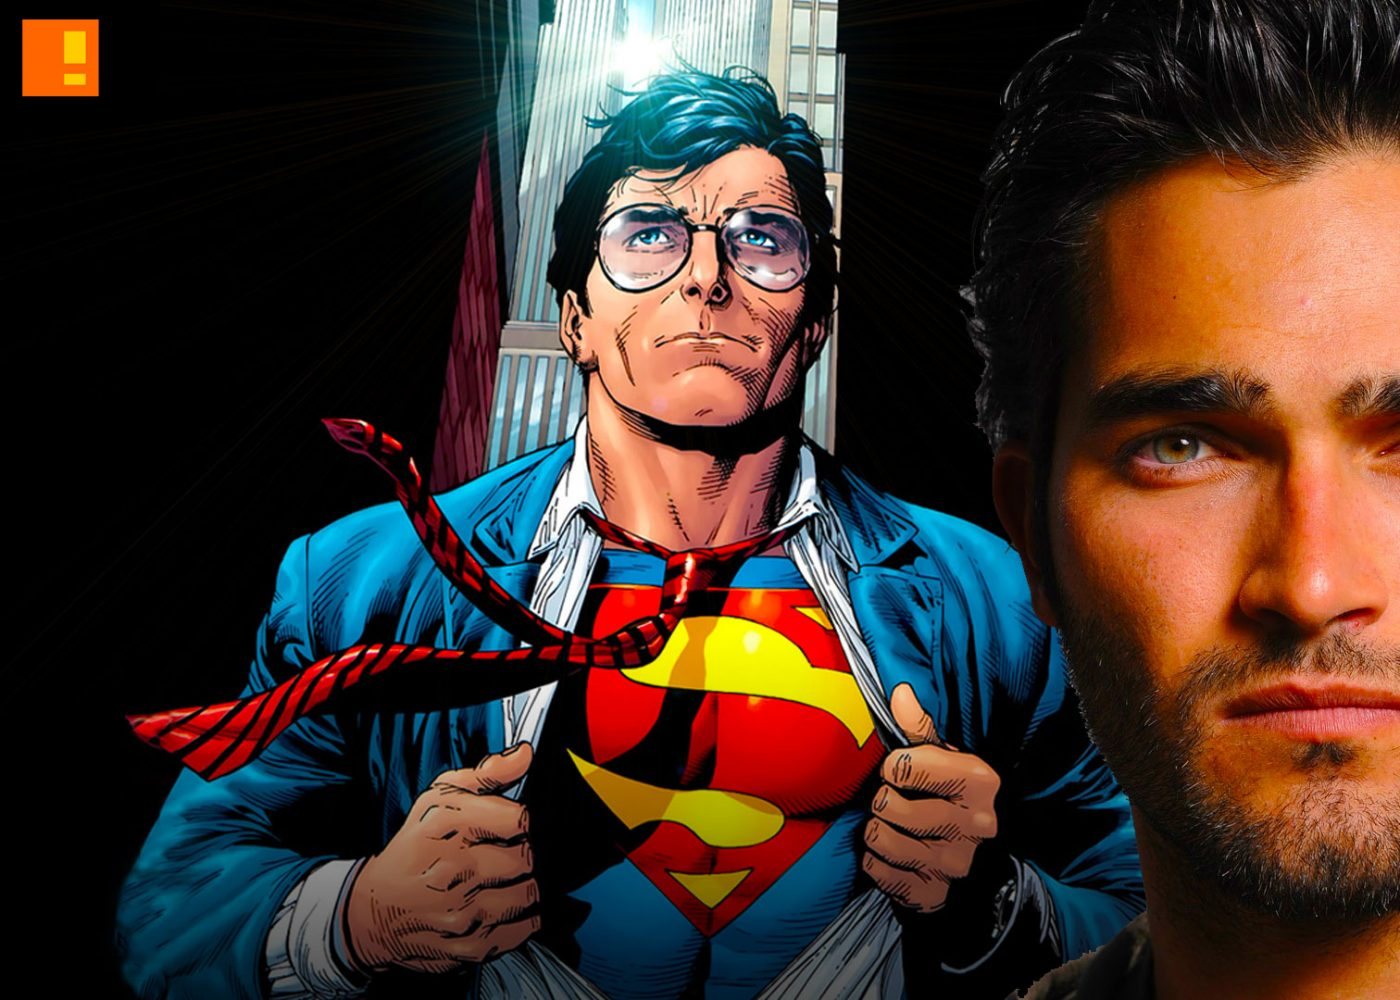 TYLER HOECHLIN, SUPERMAN, casting , cast, supergirl, cw, cbs, the cw network, the cw, entertainment on tap, the action pixel, superman, supergirl, dc comics,